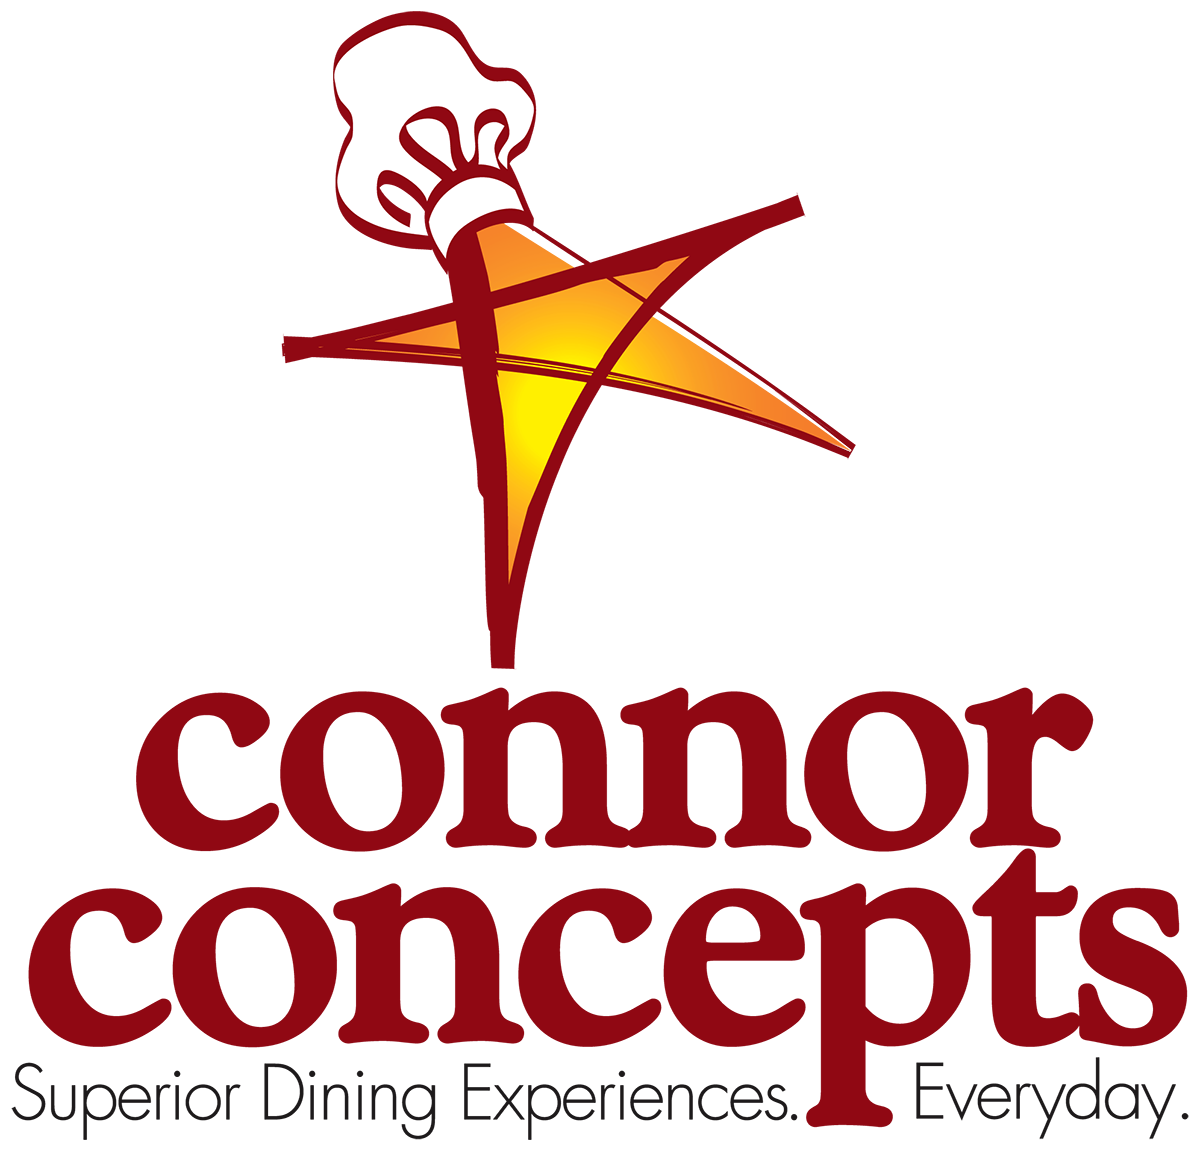 image free Vector concepts logo. Connor inc superior dining